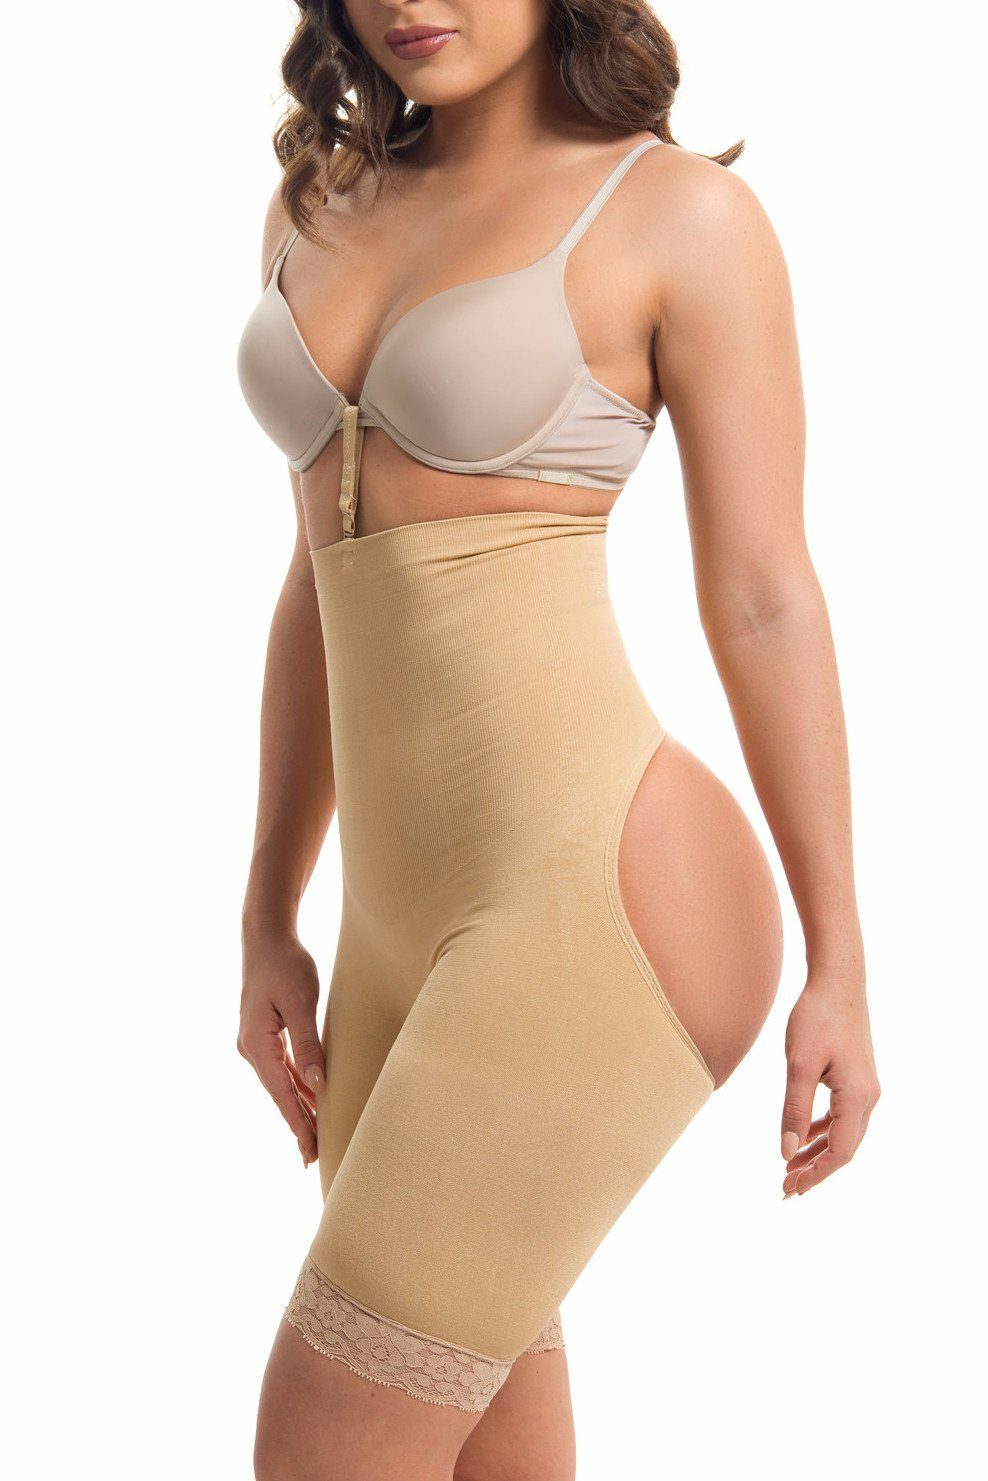 2203936b571 High Waisted Body Shaper   Butt Lifter NUDE -RESTOCKED – Fashion Effect  Store